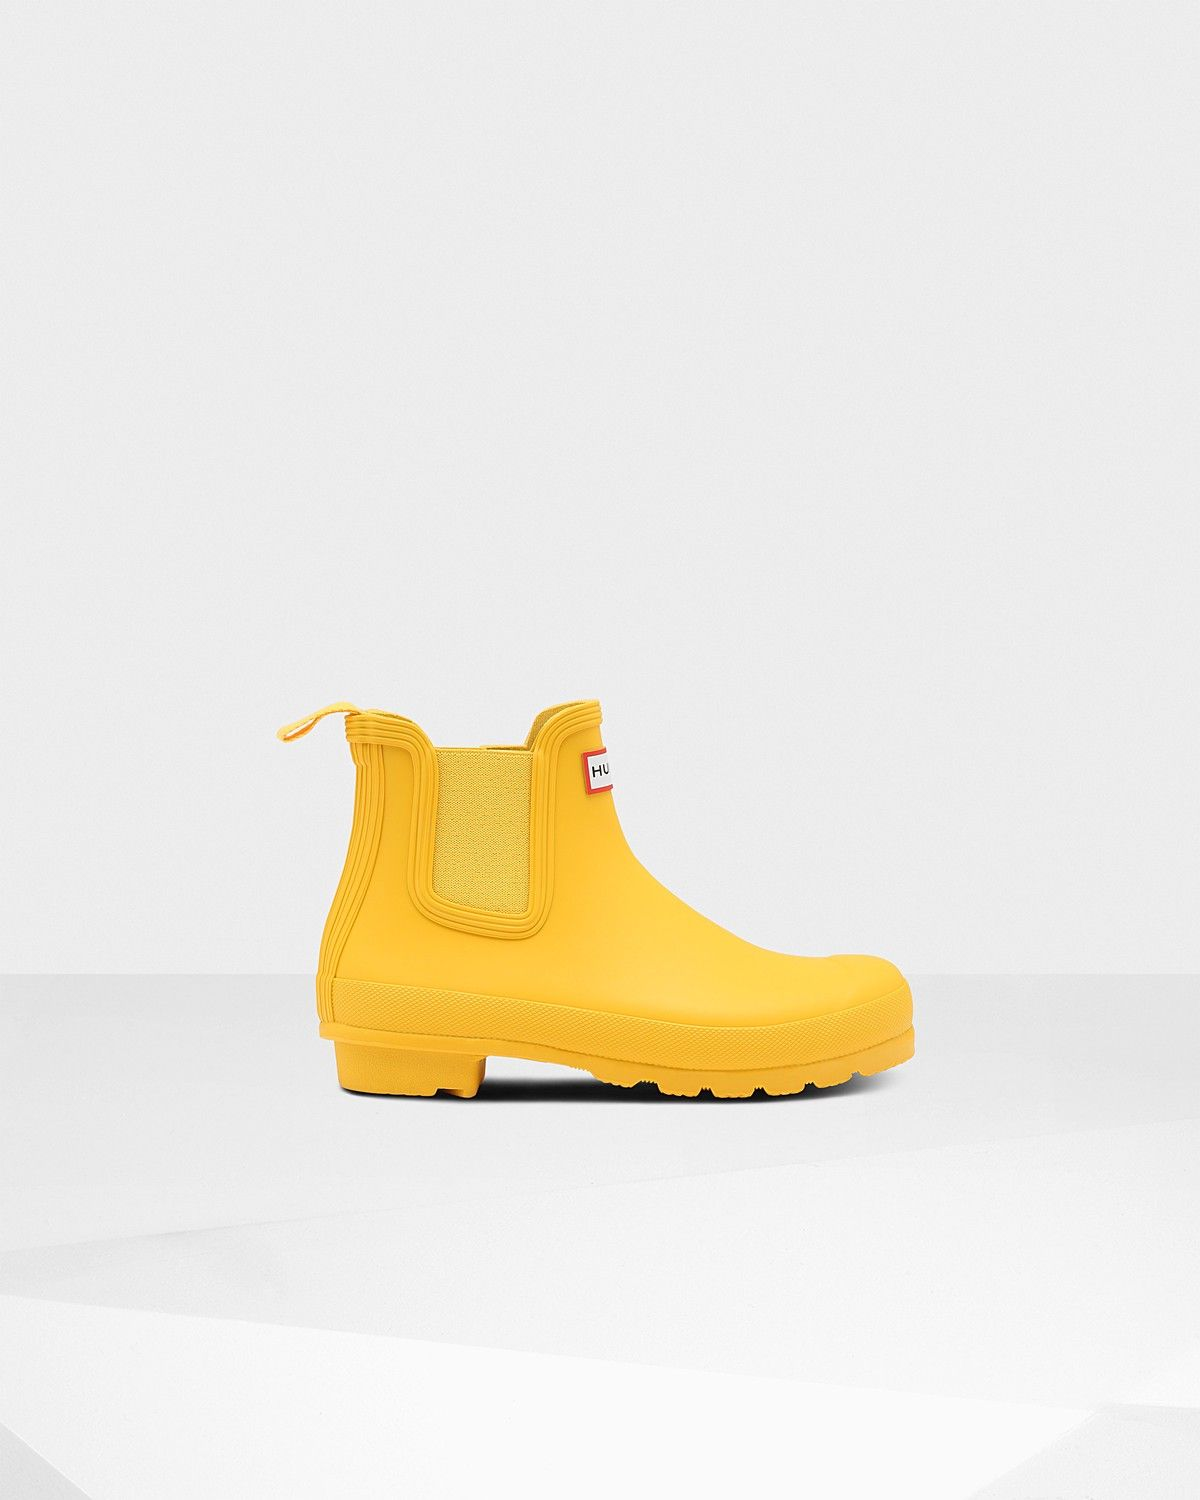 new concept 8aa36 d15d5 Hunter Women's Original Chelsea Boots: Yellow - Us 5 | Feel ...